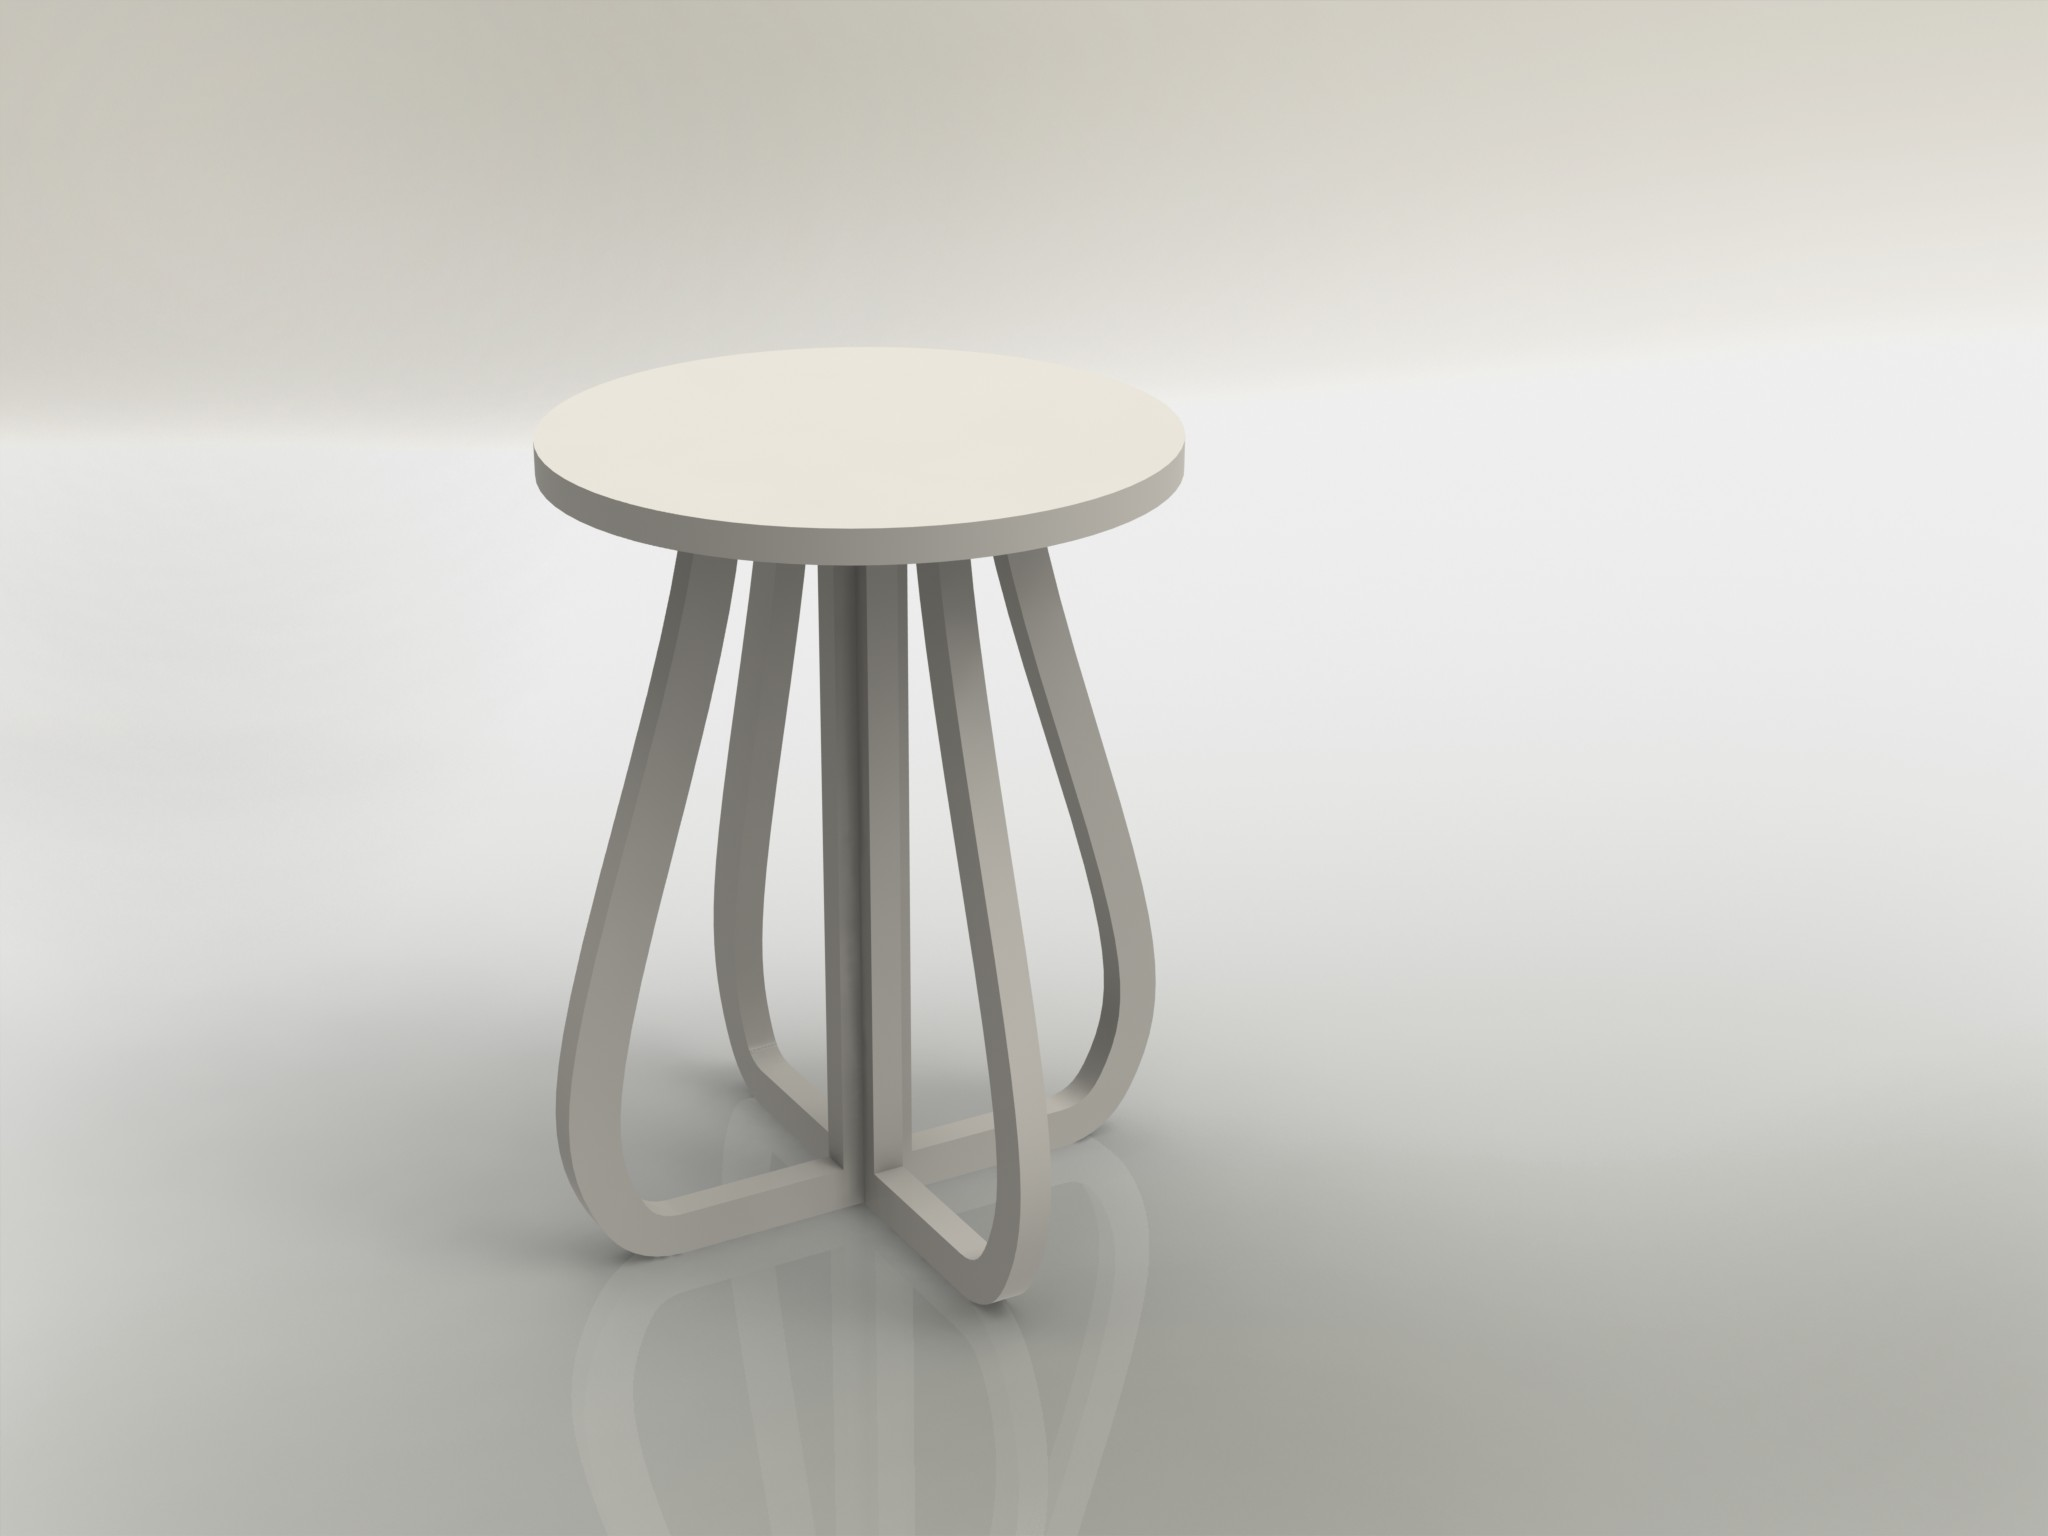 Tabouret 19mm Free Dxf For CNC DXF Vectors File